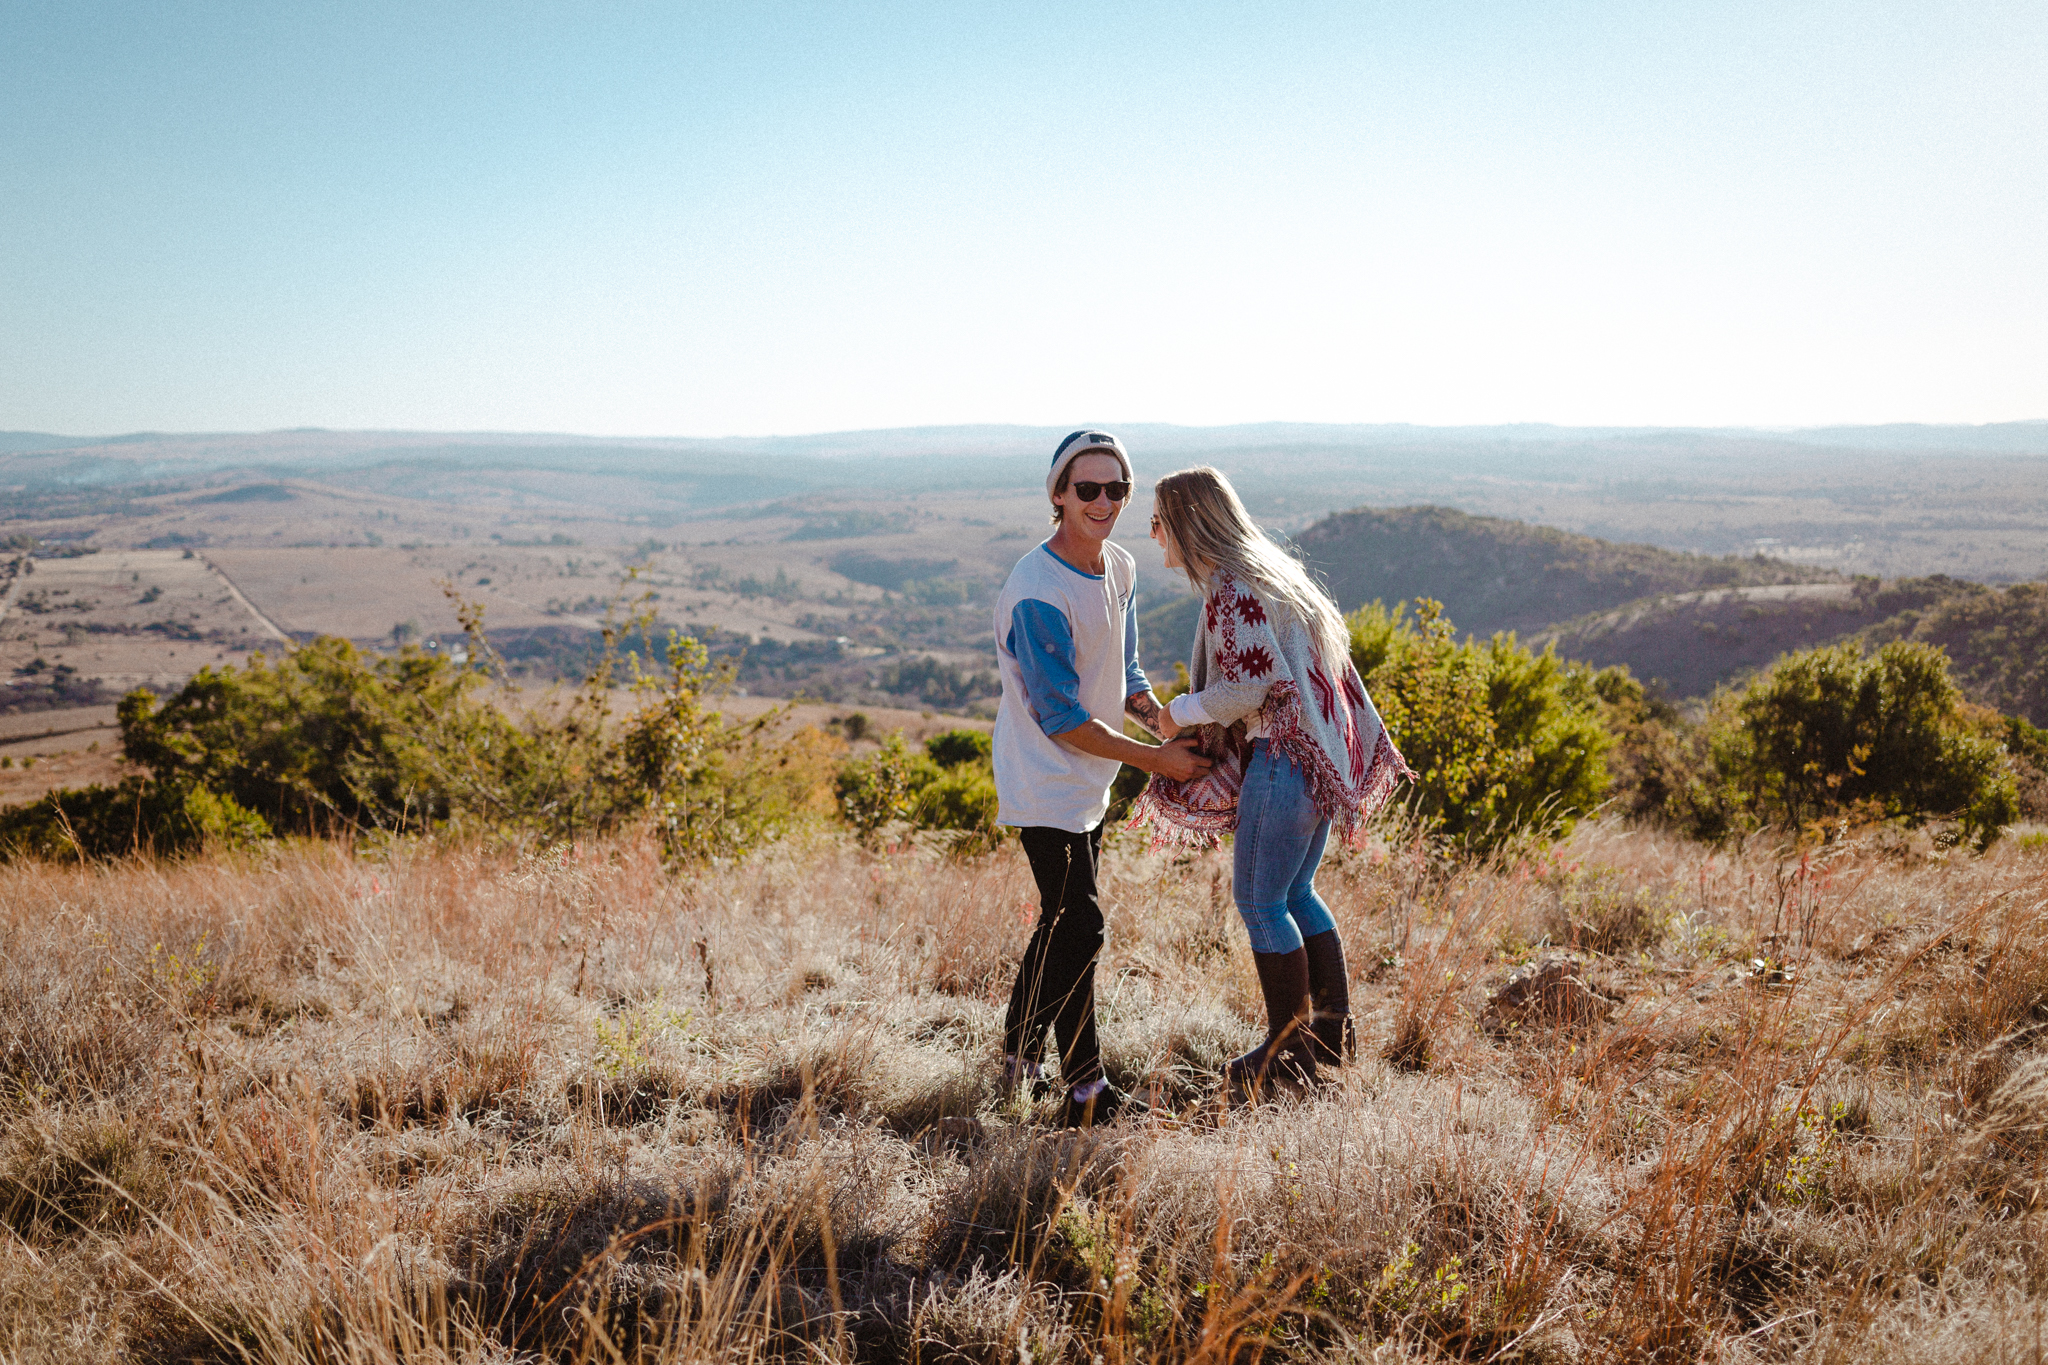 M&D Anniversary_couples shoot_jess sterk photography_winter_family_mountains_hiking_adventure